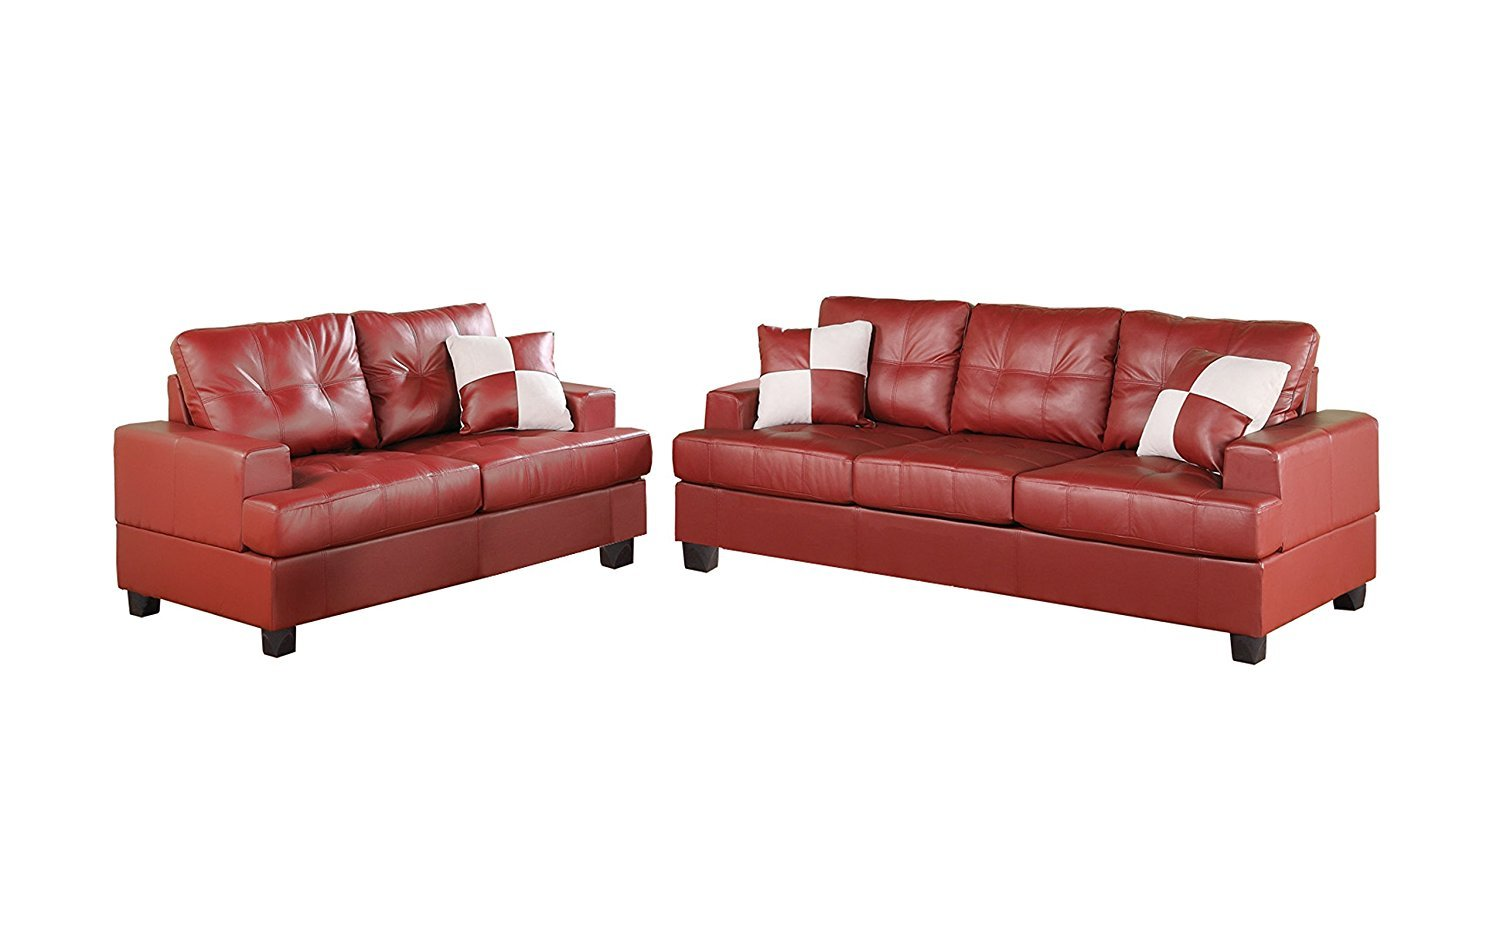 Red Leather Sectional Couch Home Furniture Design